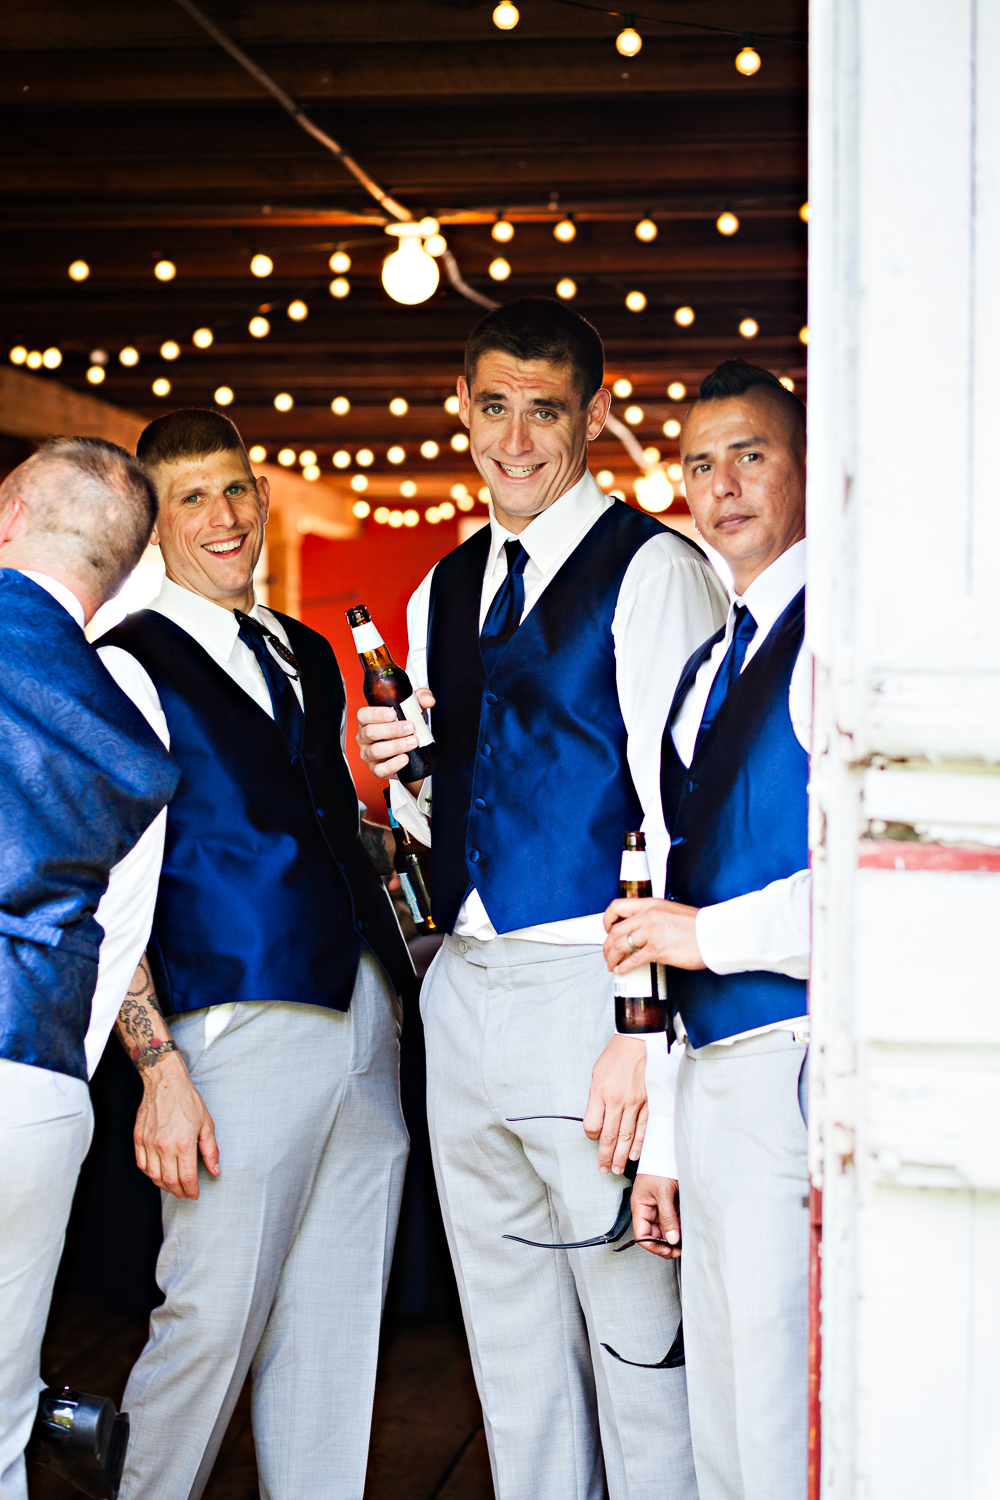 bozeman-montana-wedding-roys-barn-groomsmen-before-reception.jpg